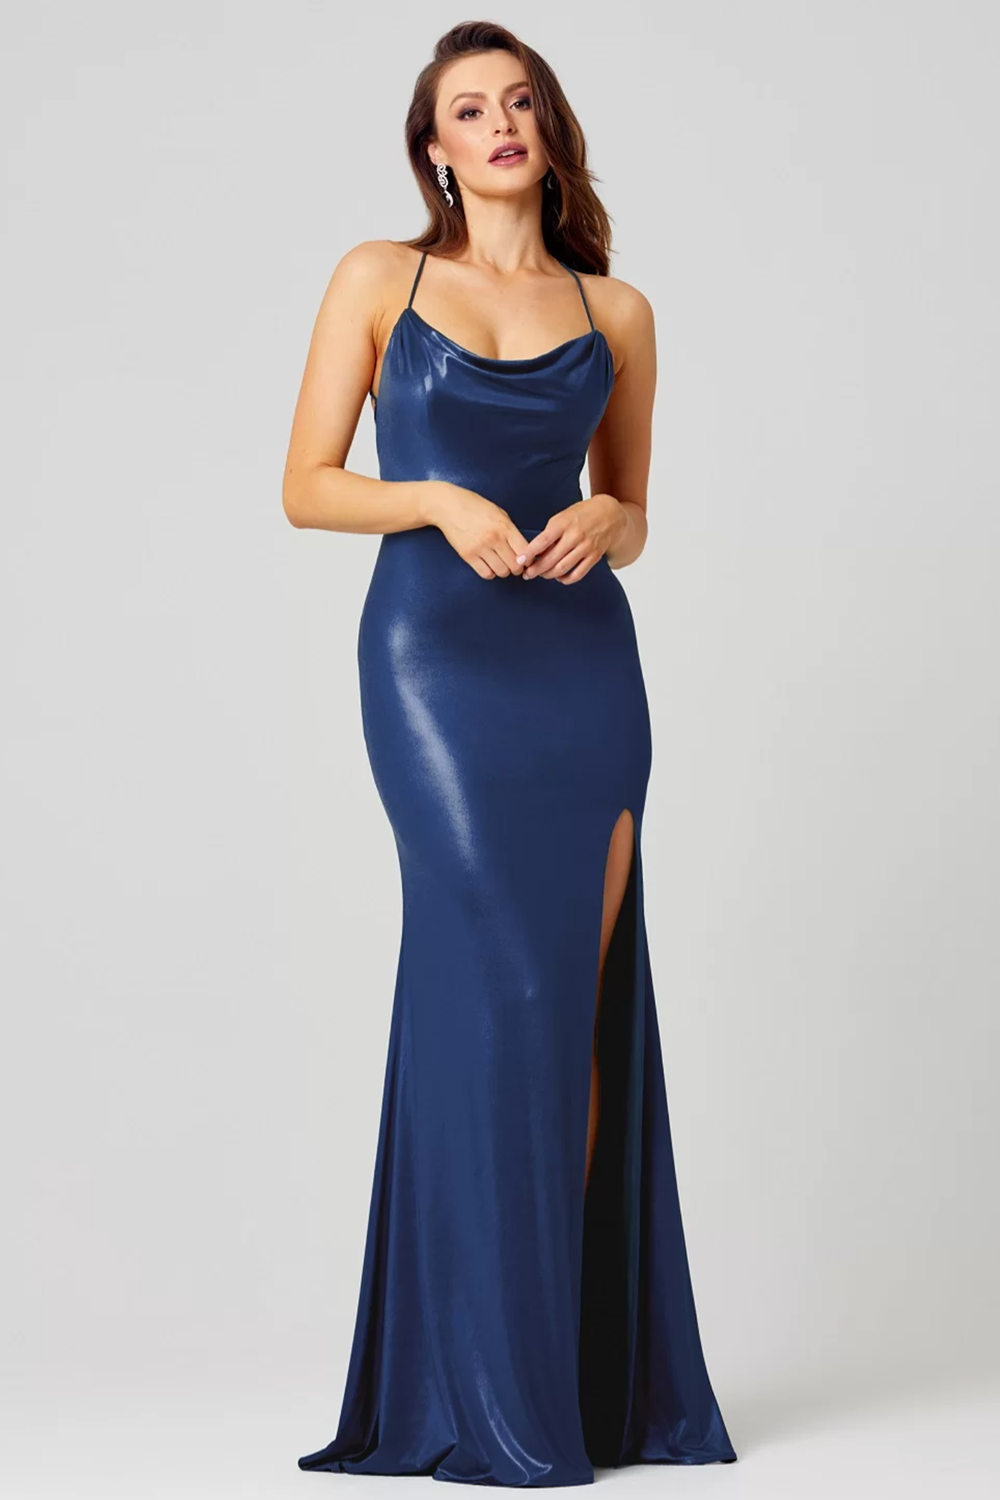 Piper Gown PO858 by Tania Olsen Designs - Navy